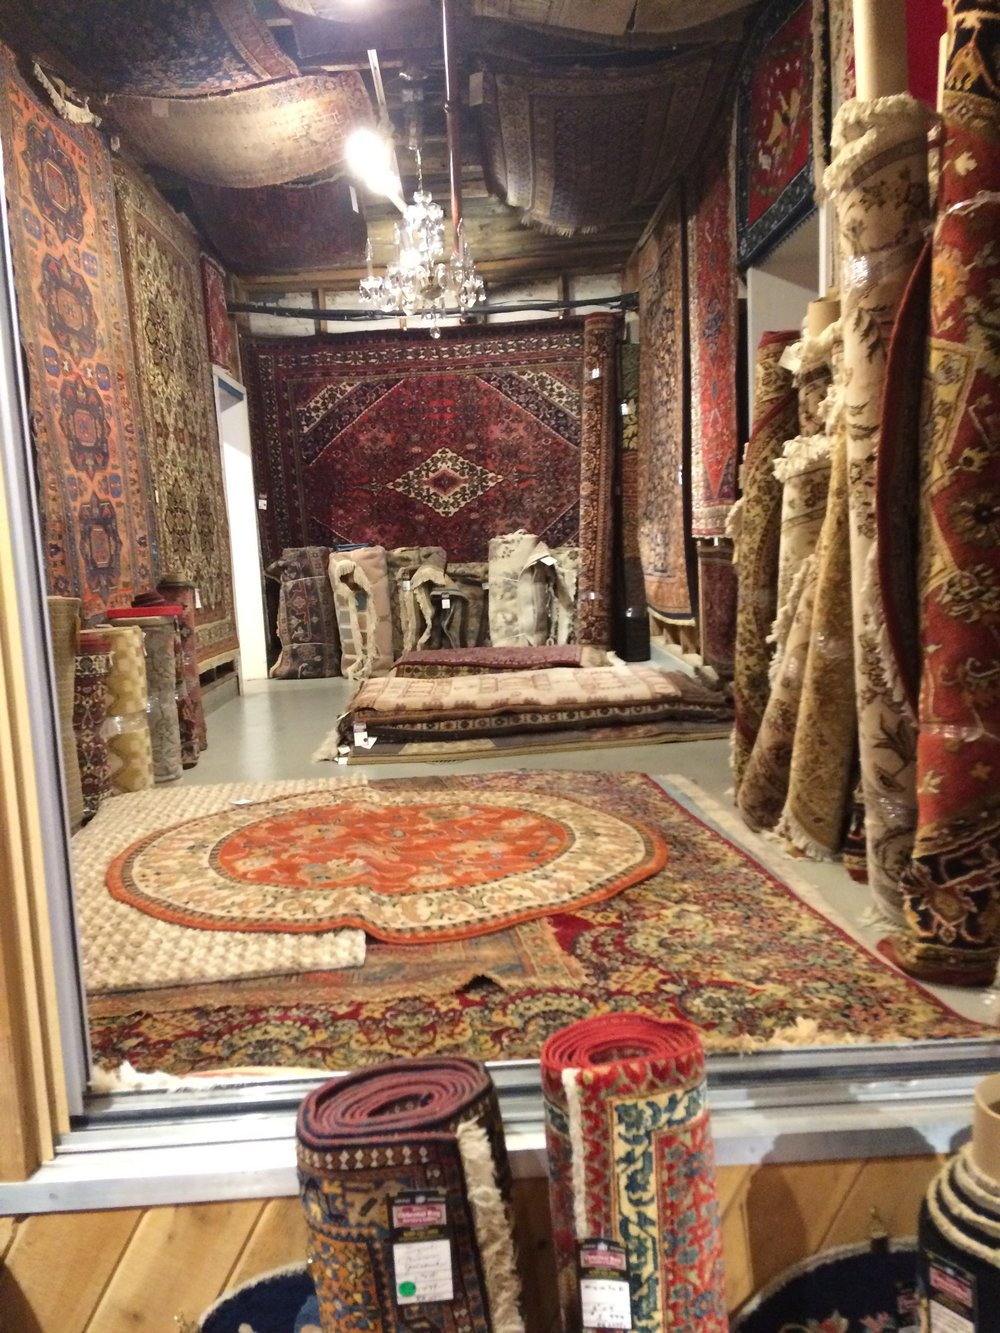 The showroom at Ward's Oriental Rugs in Allentown is full of beautiful hand woven carpets, new and vintage.